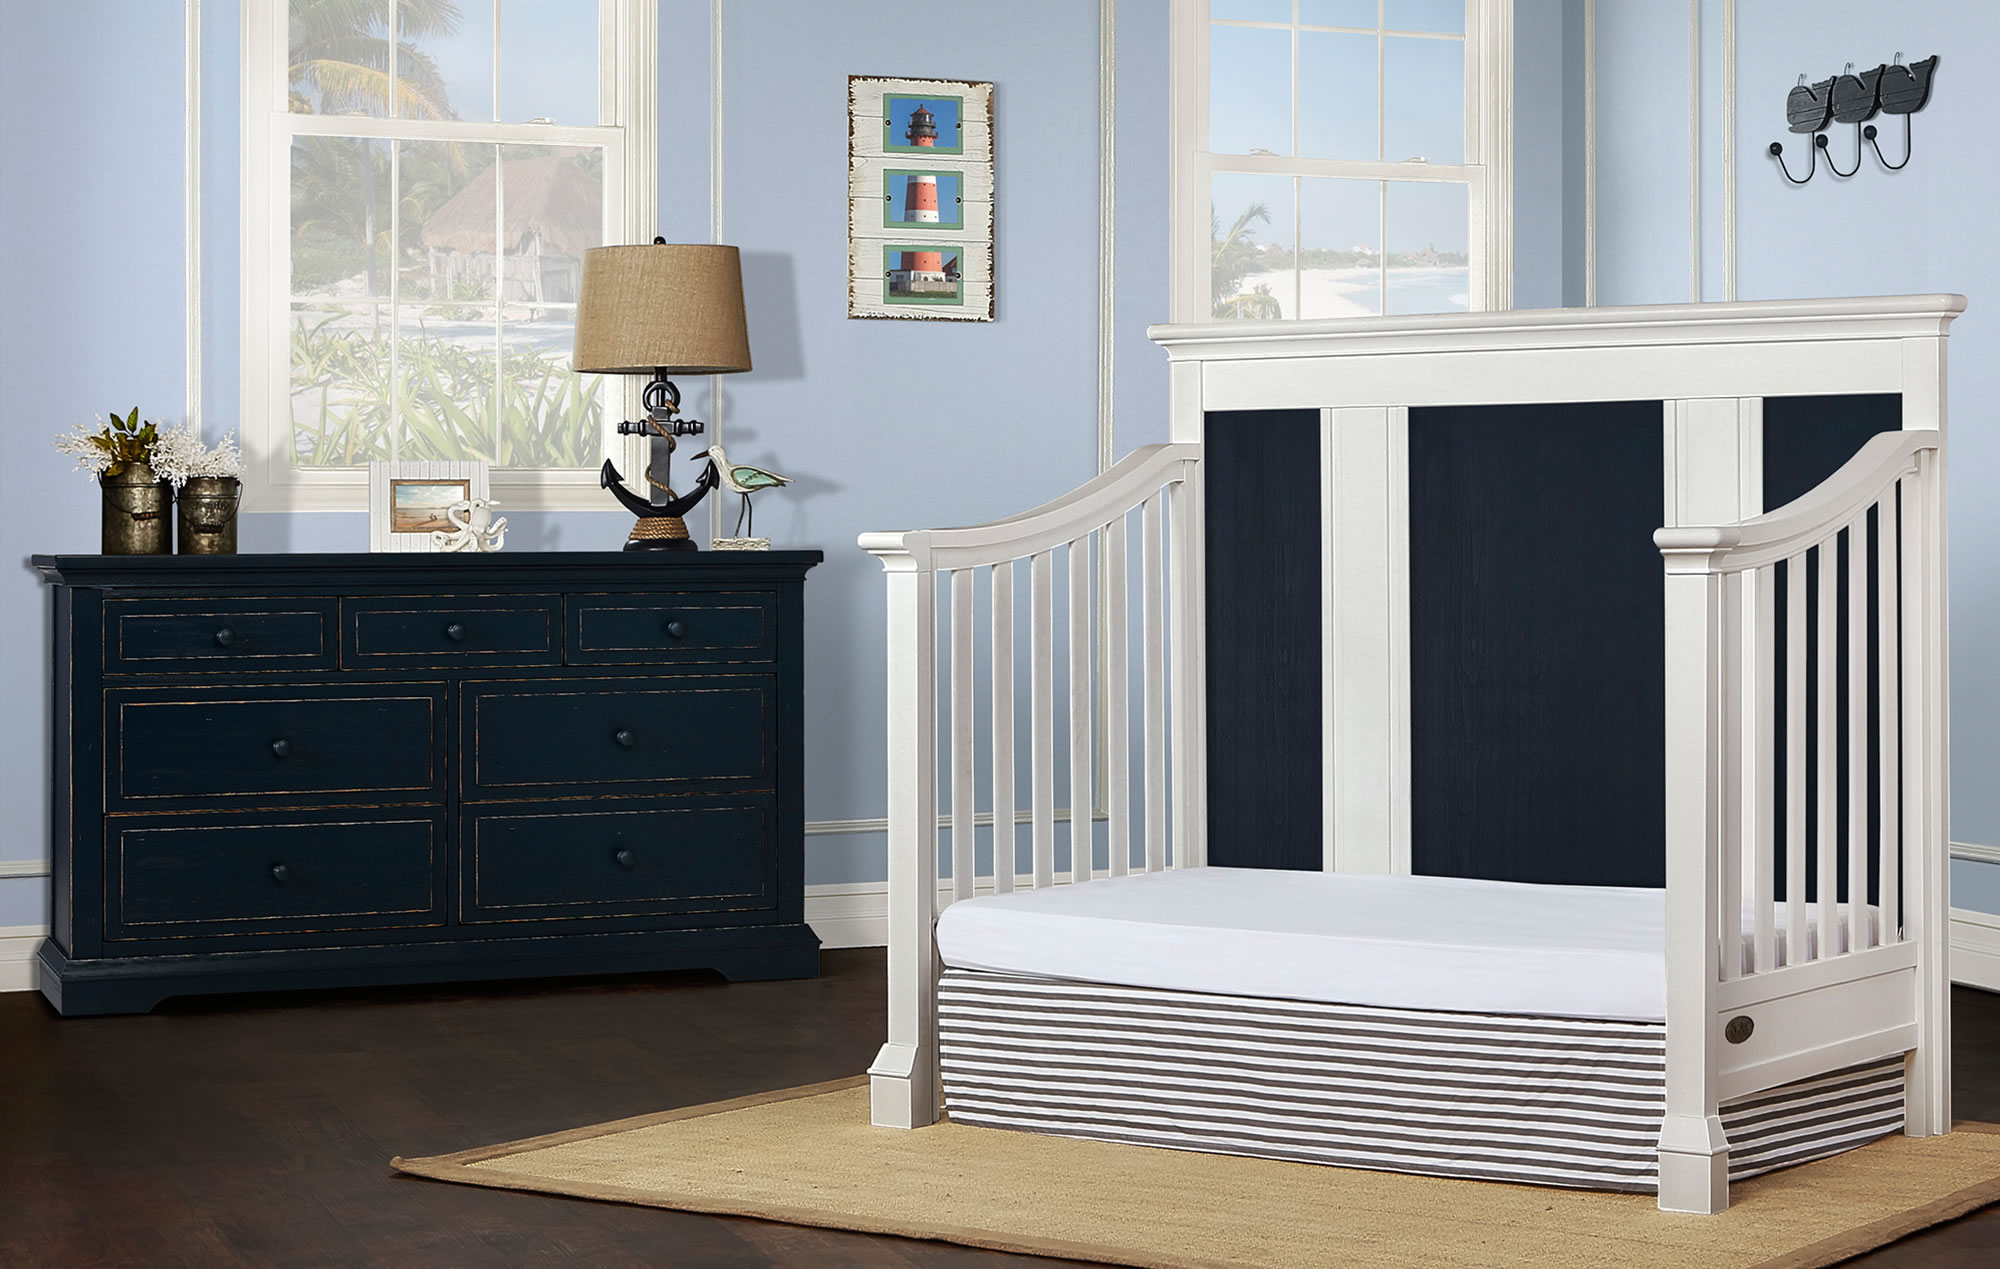 842-WDN Evolur Parker Day Bed RS2